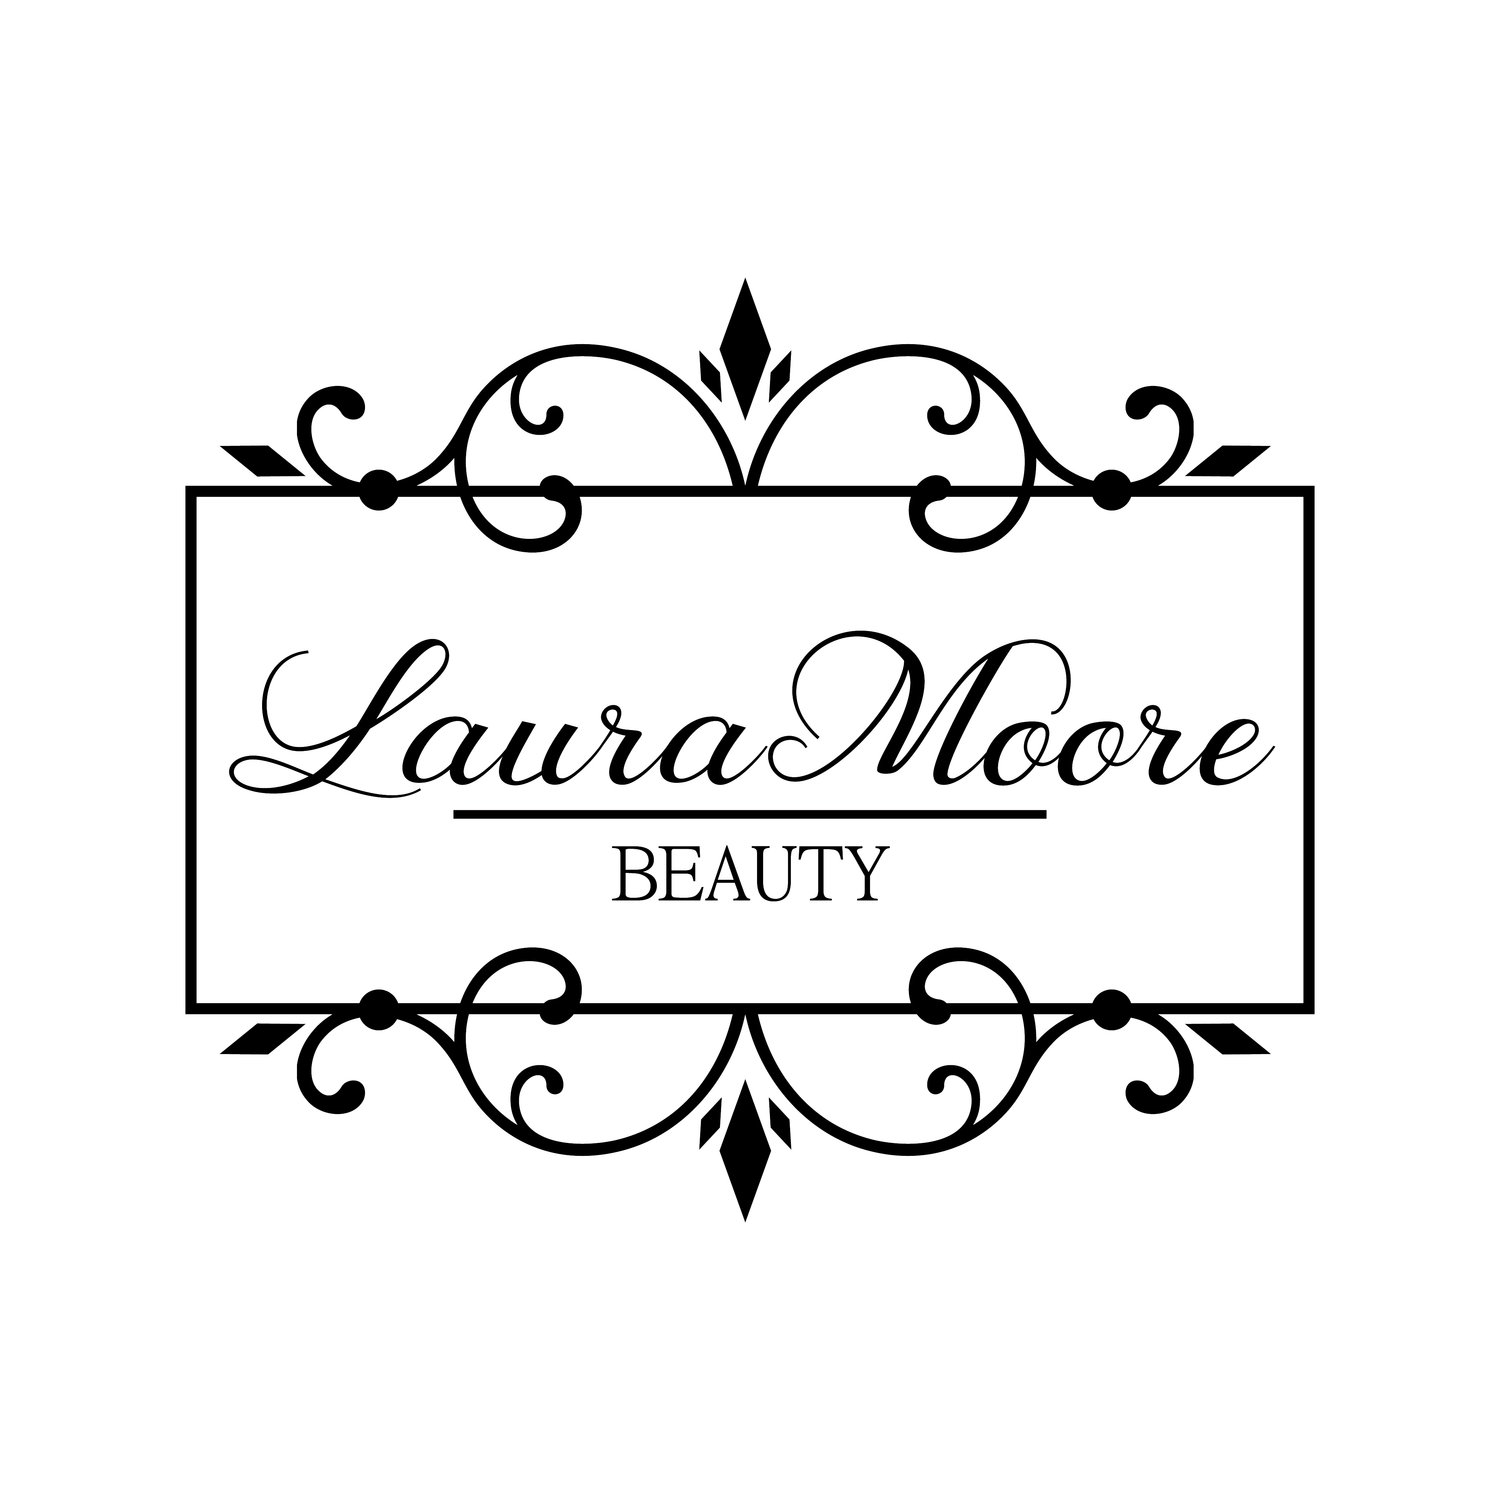 Laura Moore Beauty